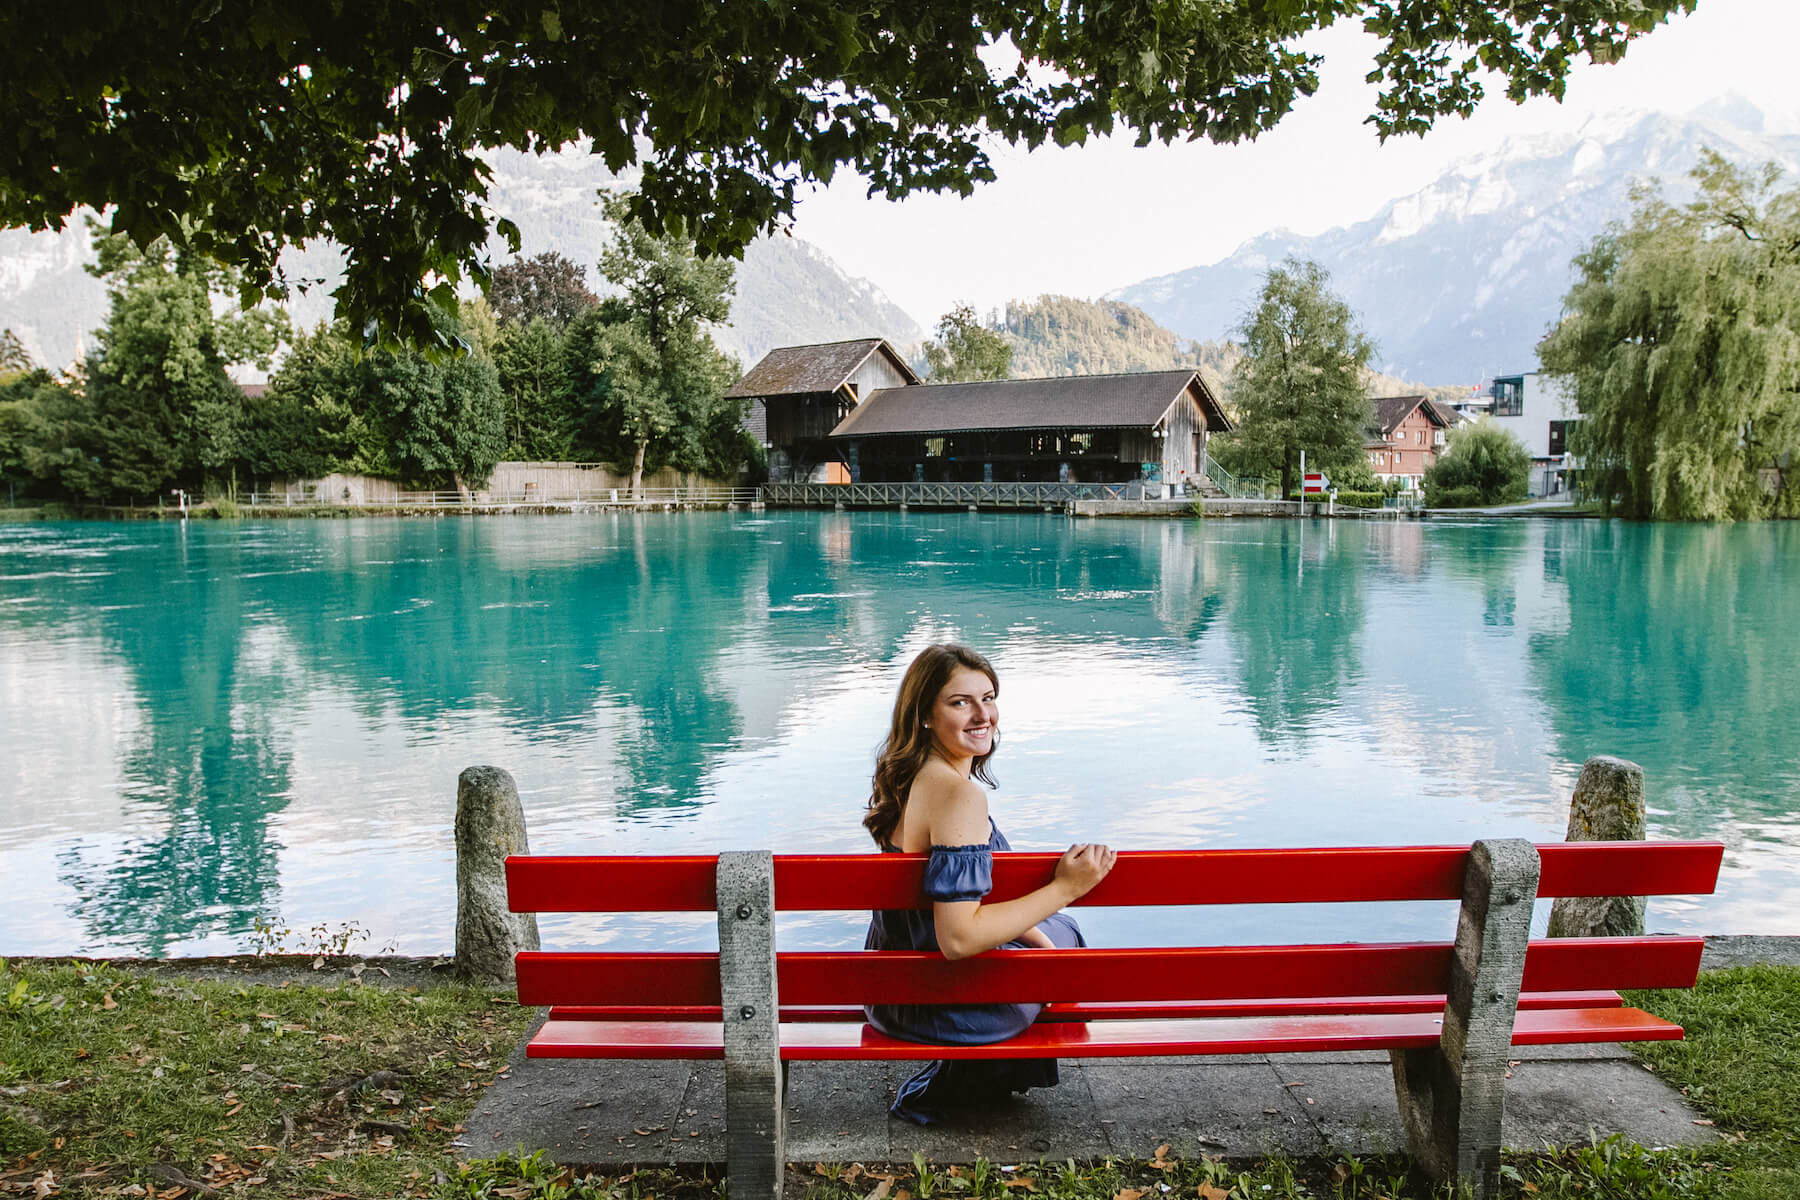 A young woman sitting on a bright red park bench, smiling while posing in front of a glacier-blue lake and mountains in Zurich, Switzerland.